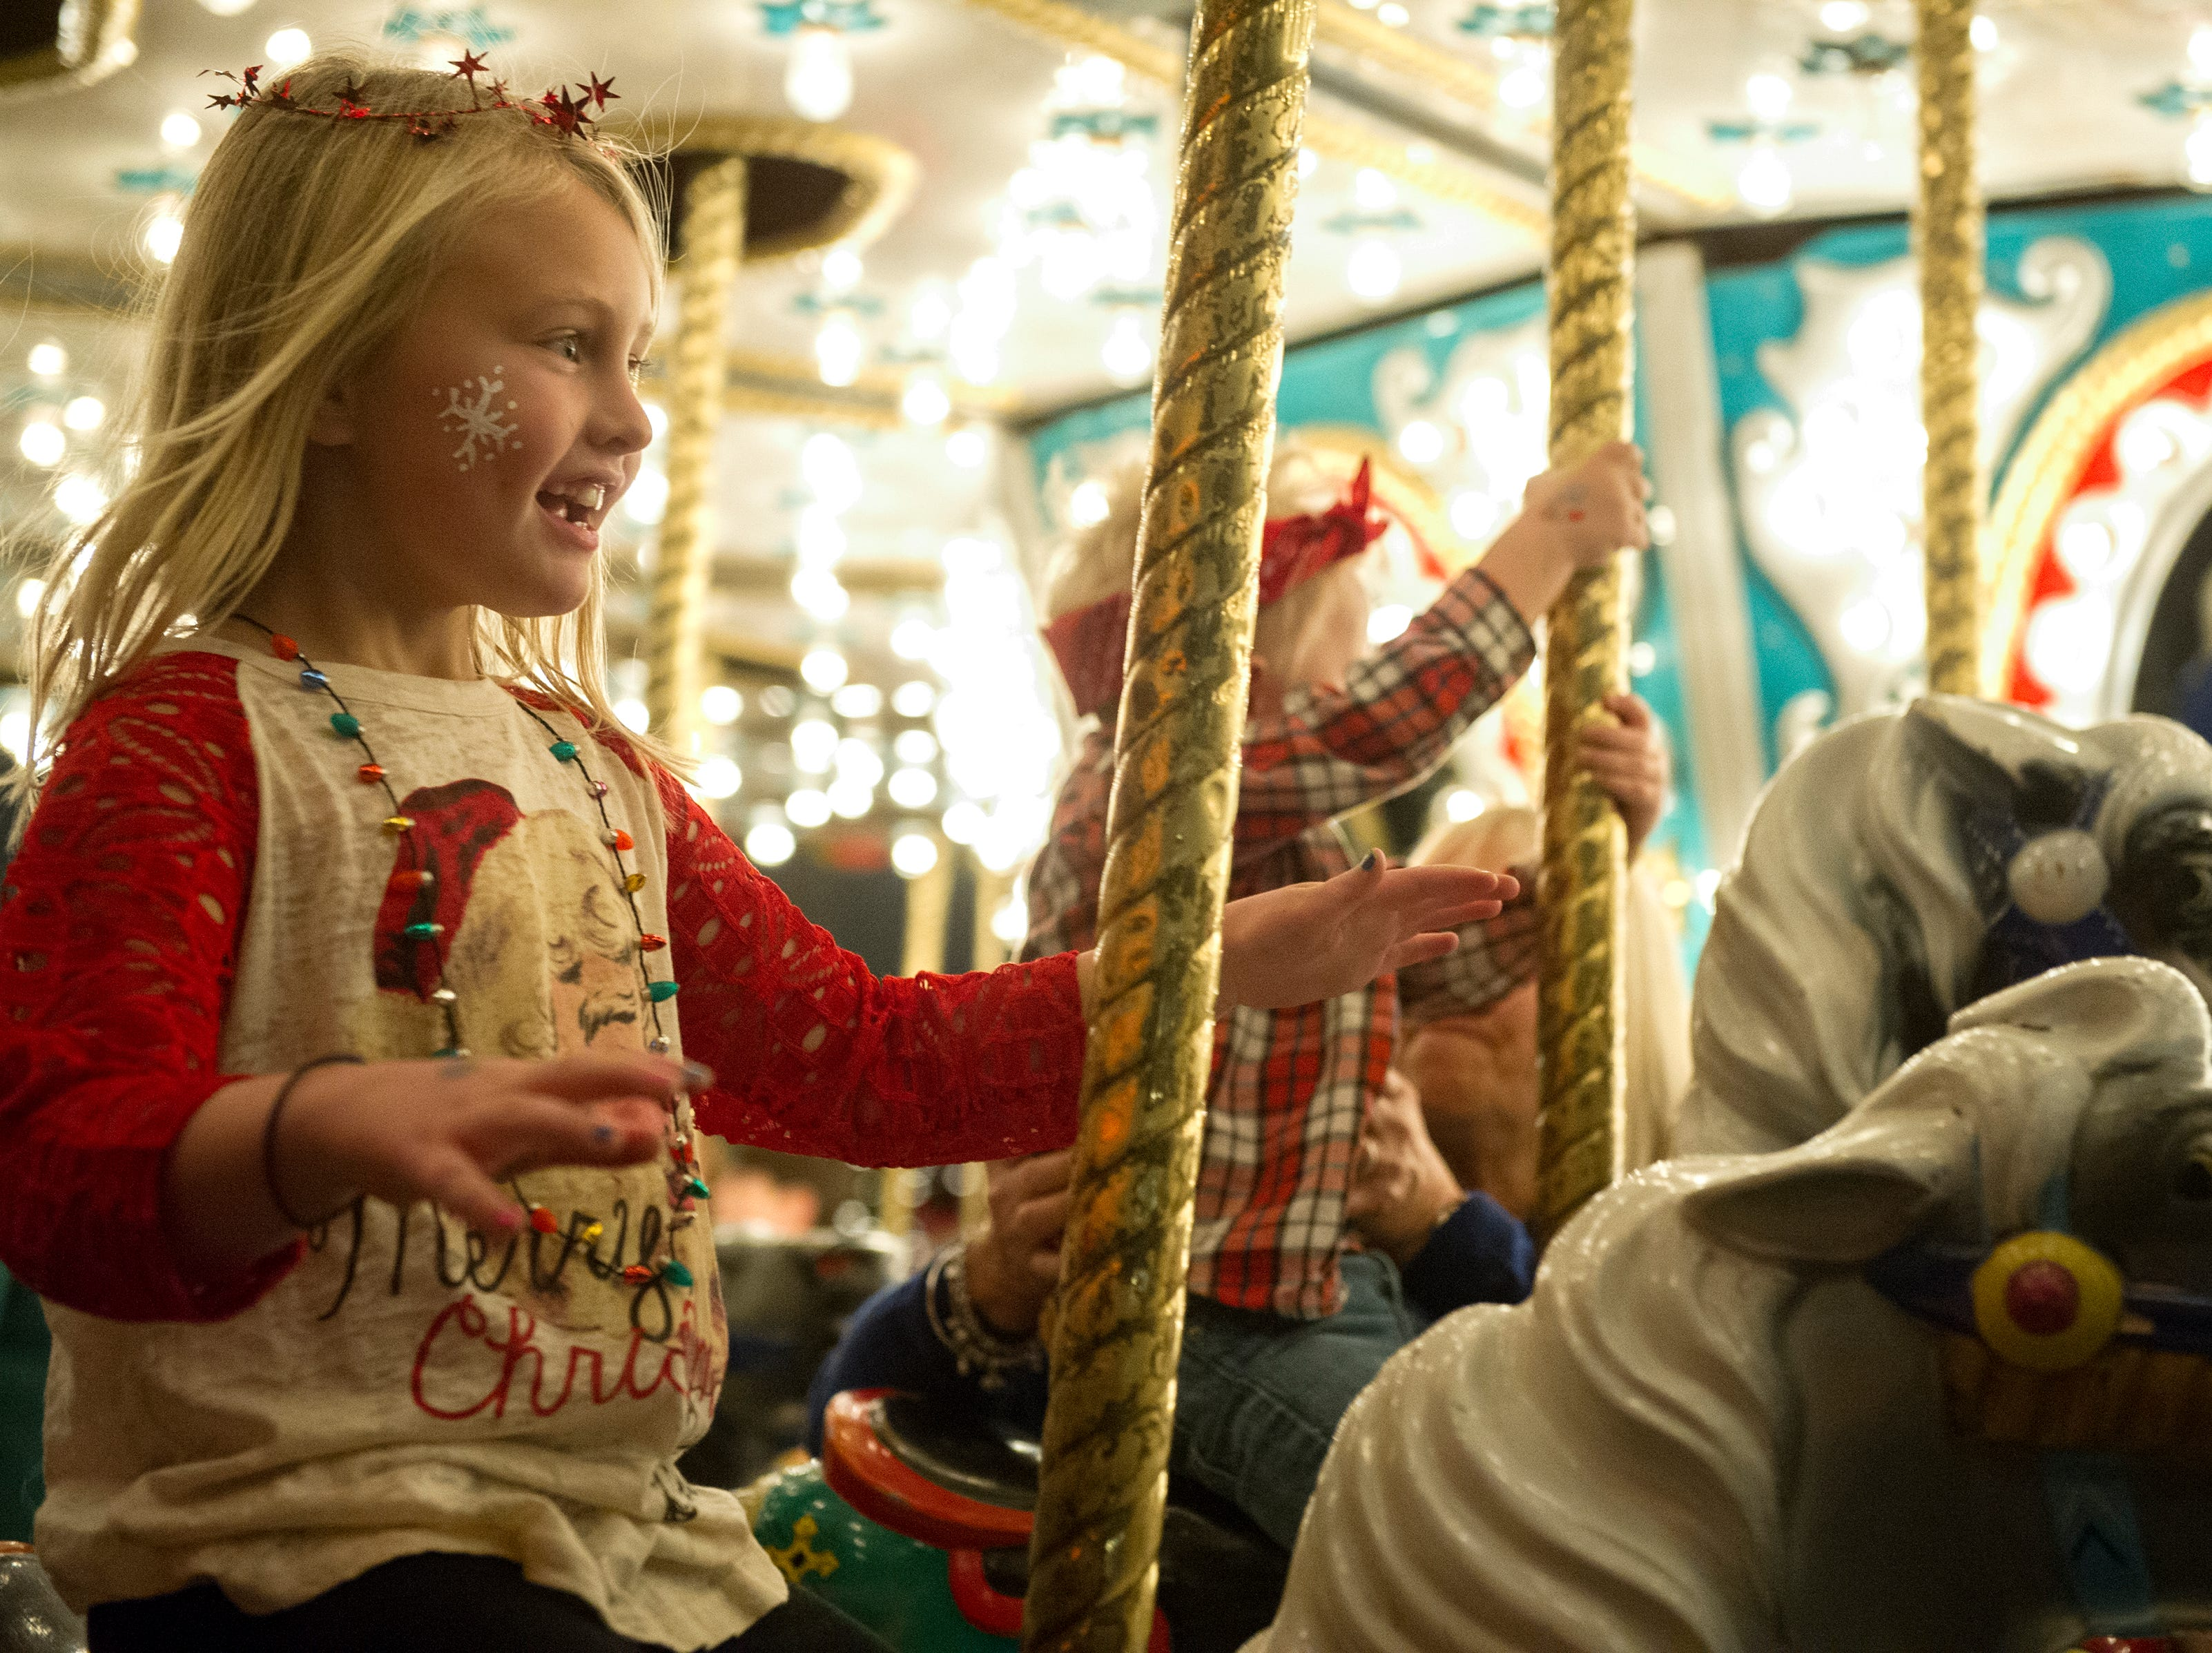 A girl rides the carousel with no hands during the Fantasy of Trees at the Knoxville Convention Center Wednesday, Nov. 25, 2015. (JESSICA TEZAK/NEWS SENTINEL)